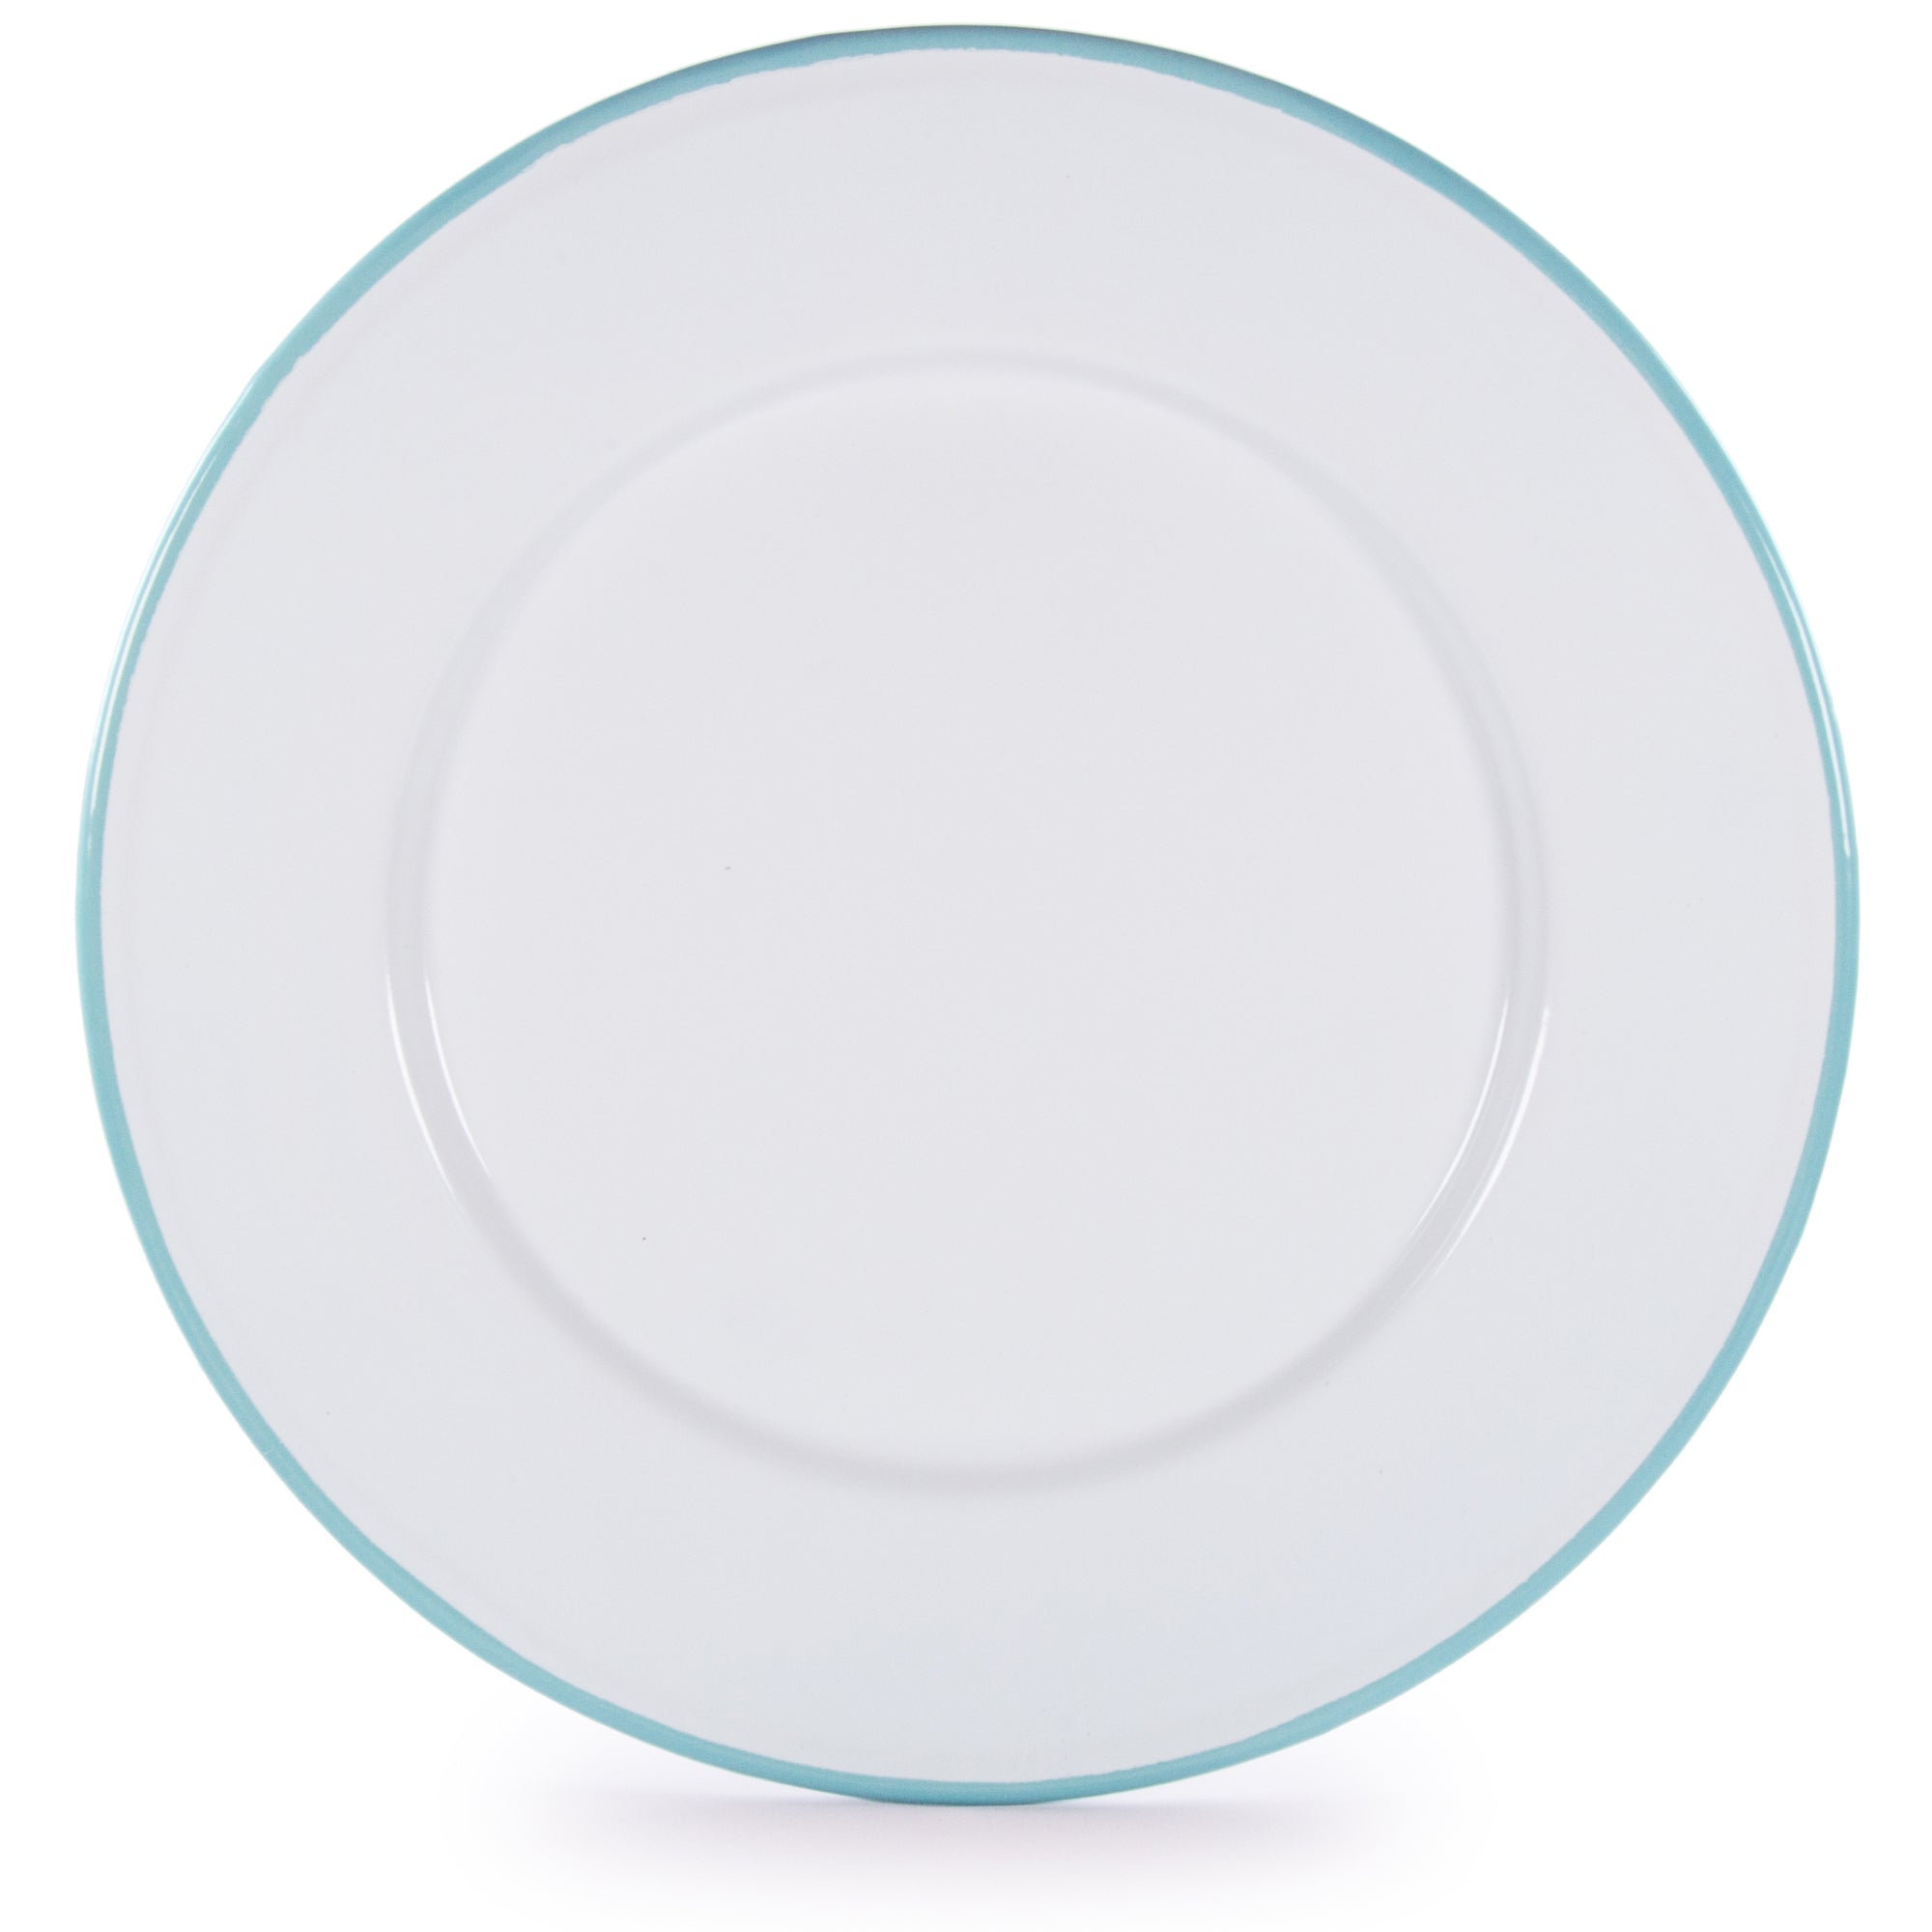 RGW91 - Rolled Sea Glass Rim Plate Set/4